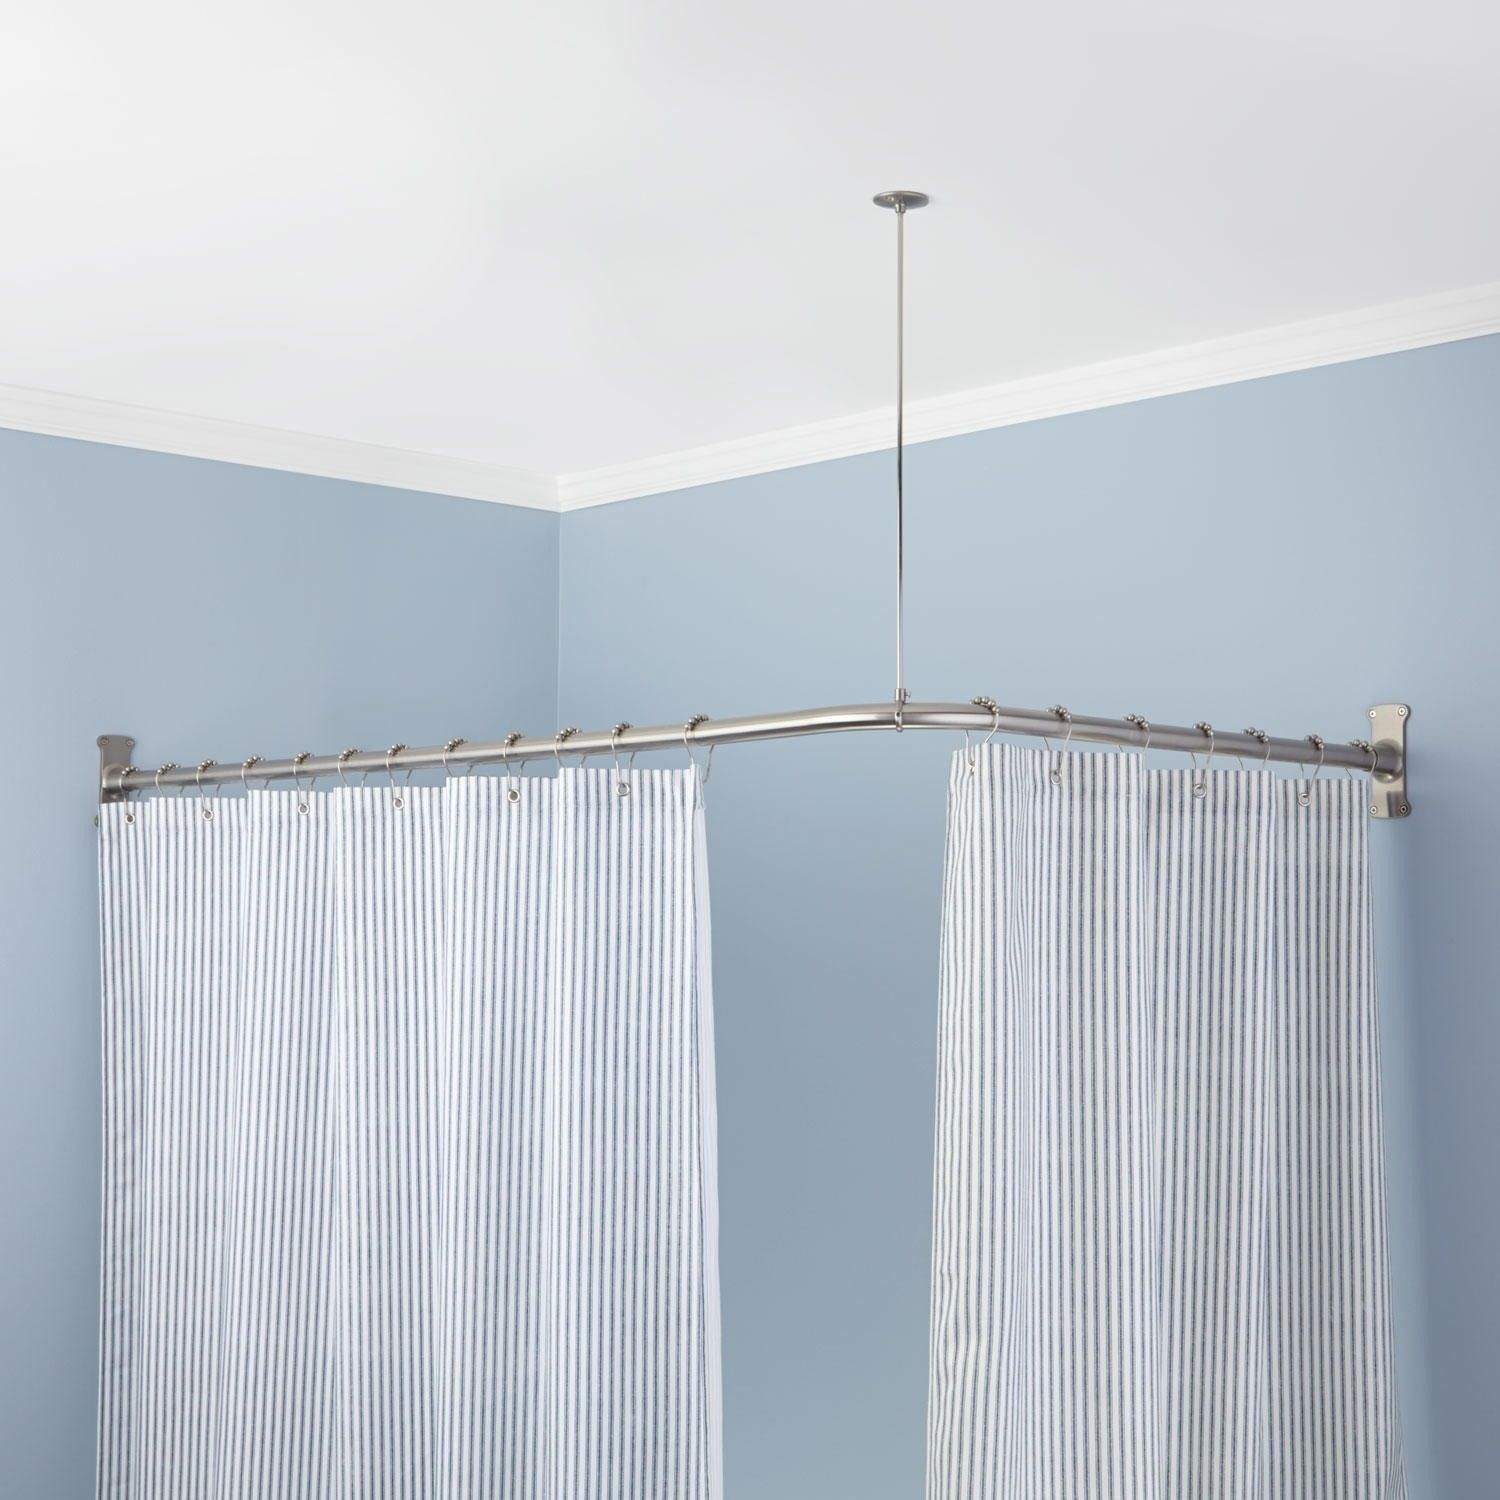 Square Bathroom Curtain Rods Lar Ideias Casas